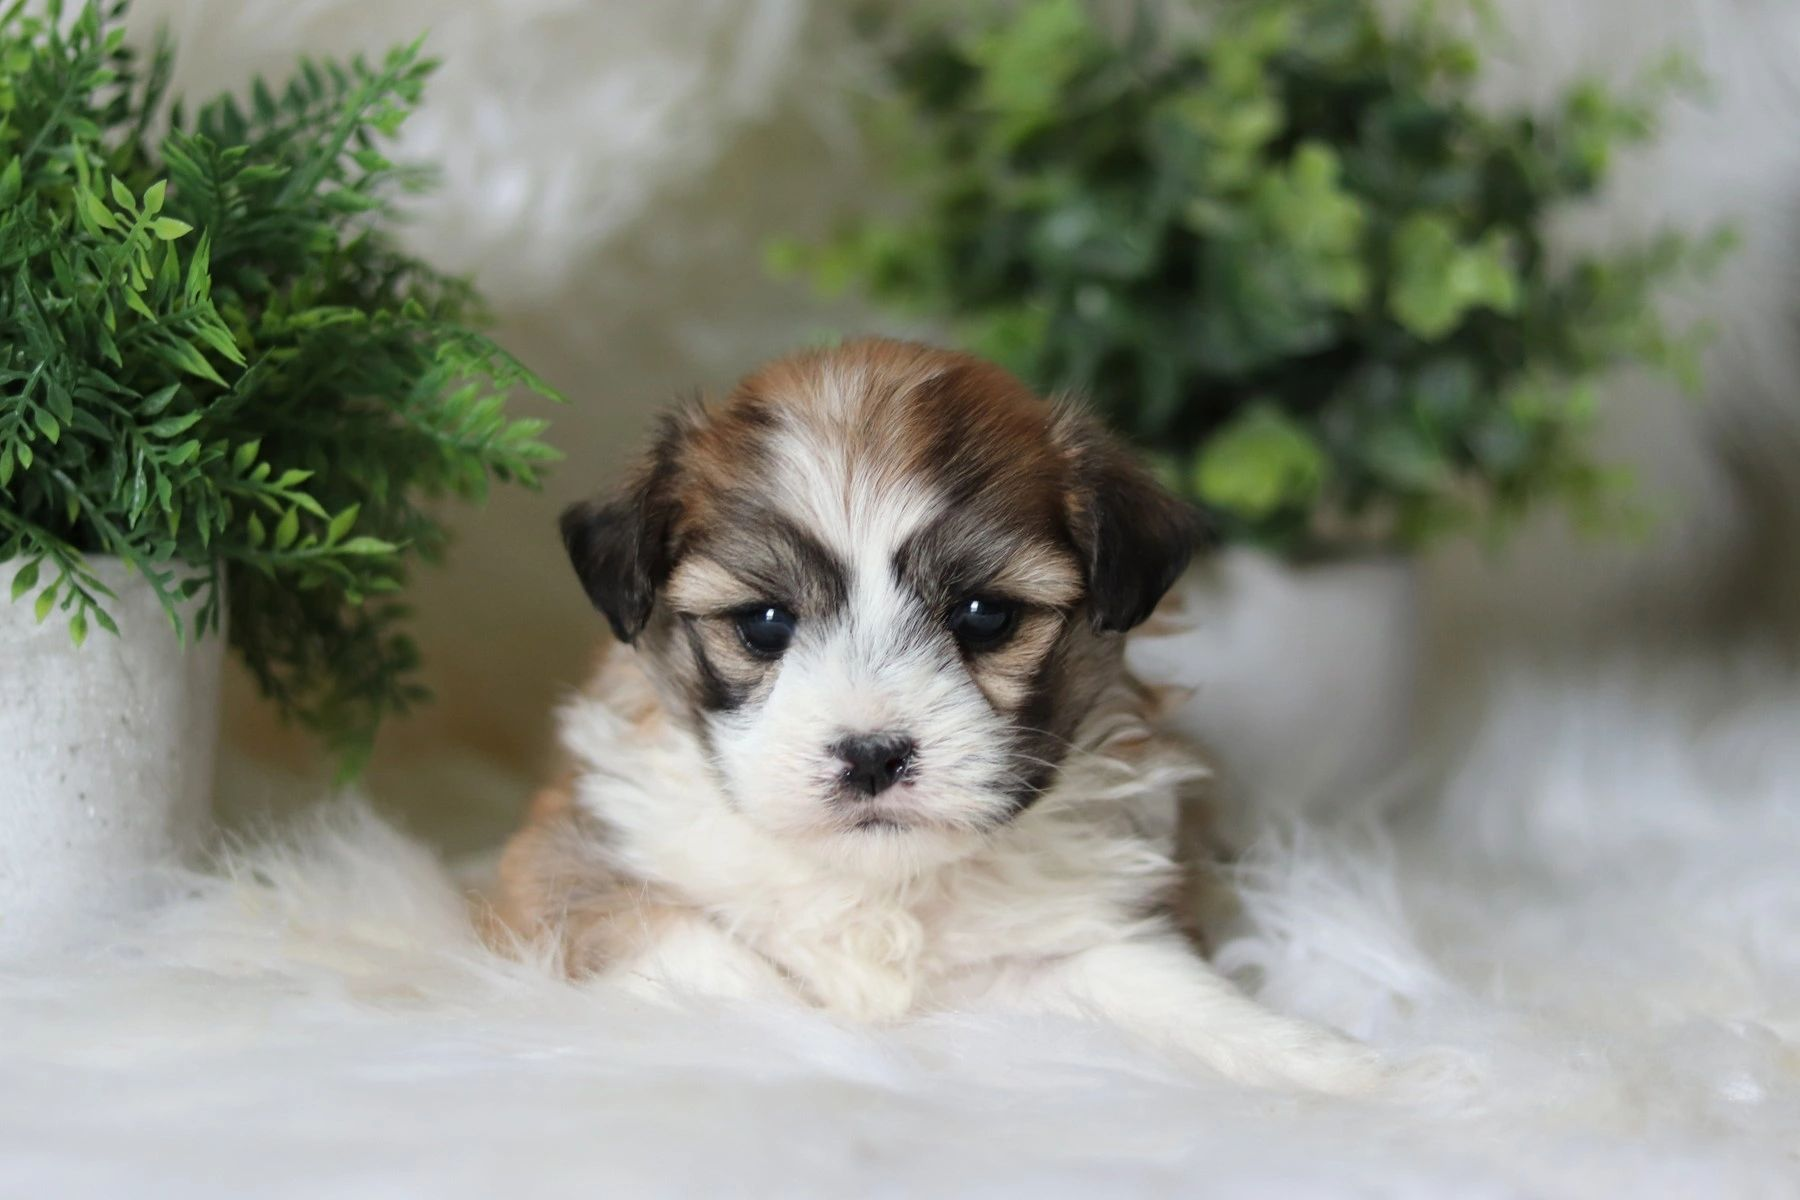 puppies for sale, poodle mix puppies, bichon mix puppies, maltese mix puppies, shihtzu mix puppies